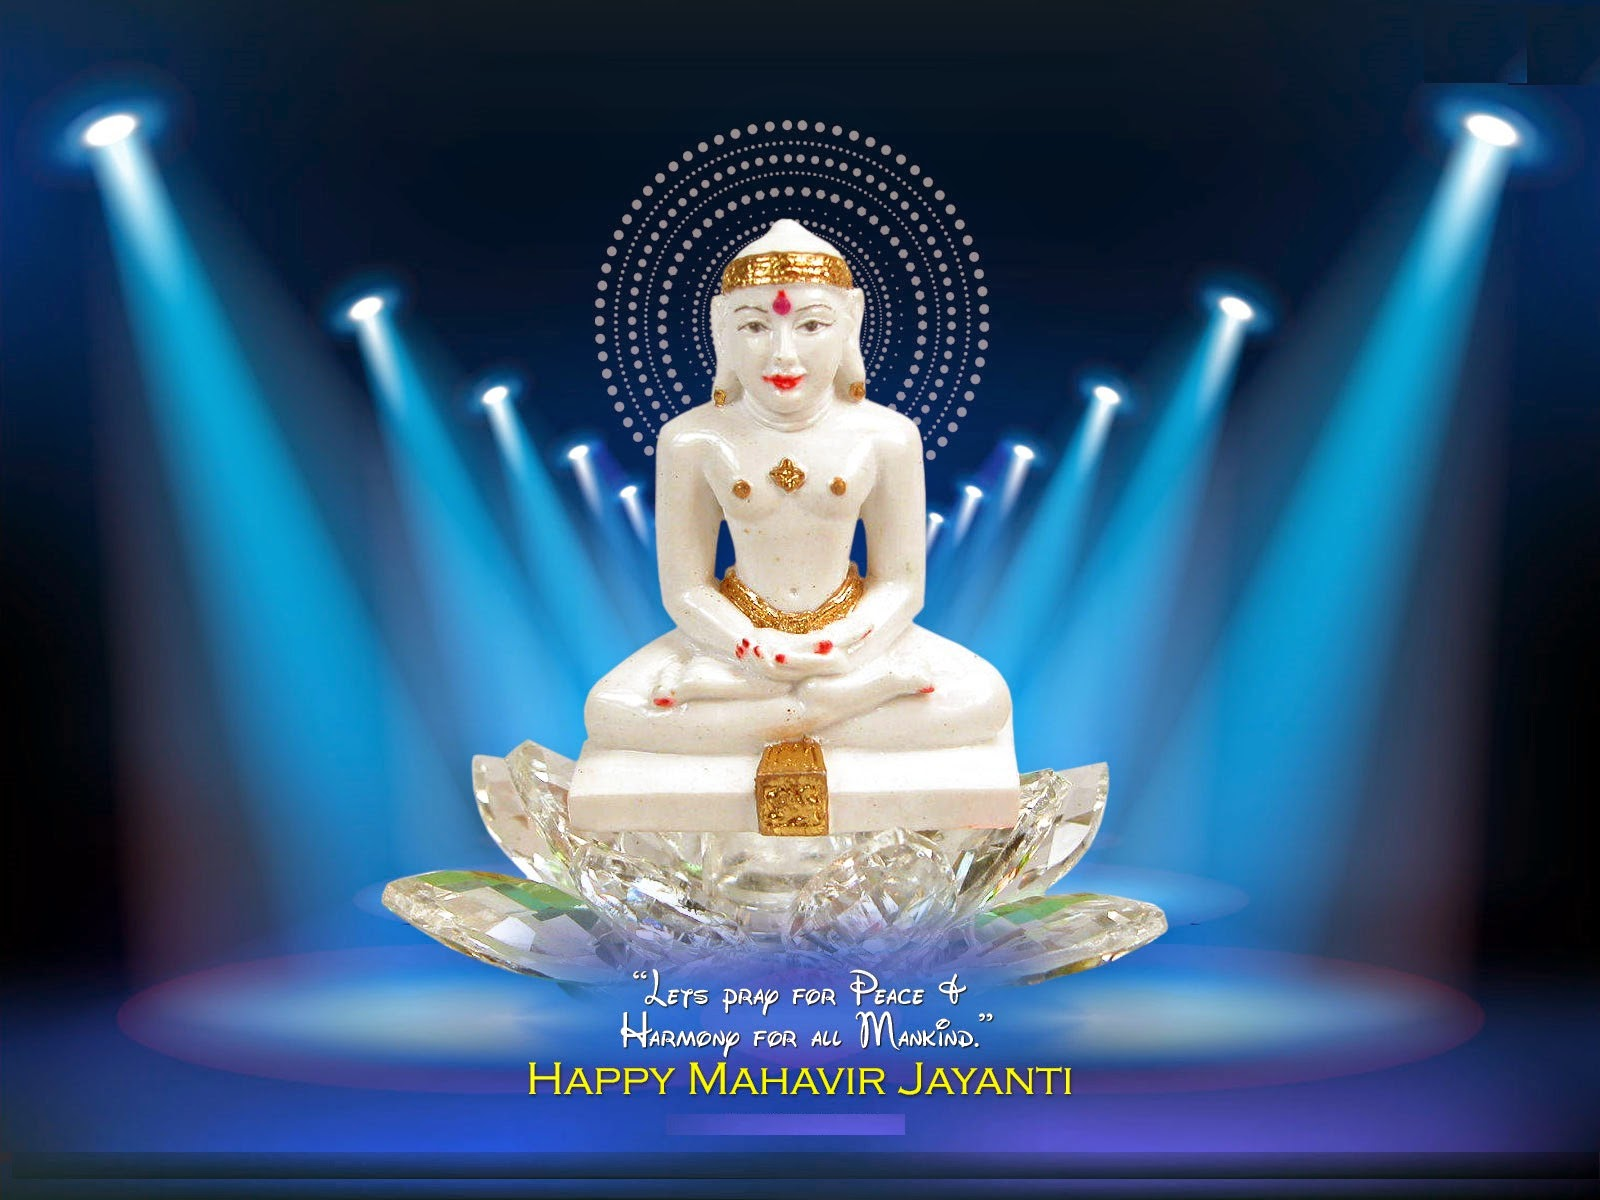 Happy Mahavir Jayanti sms fb quotes whatsapp status 2016